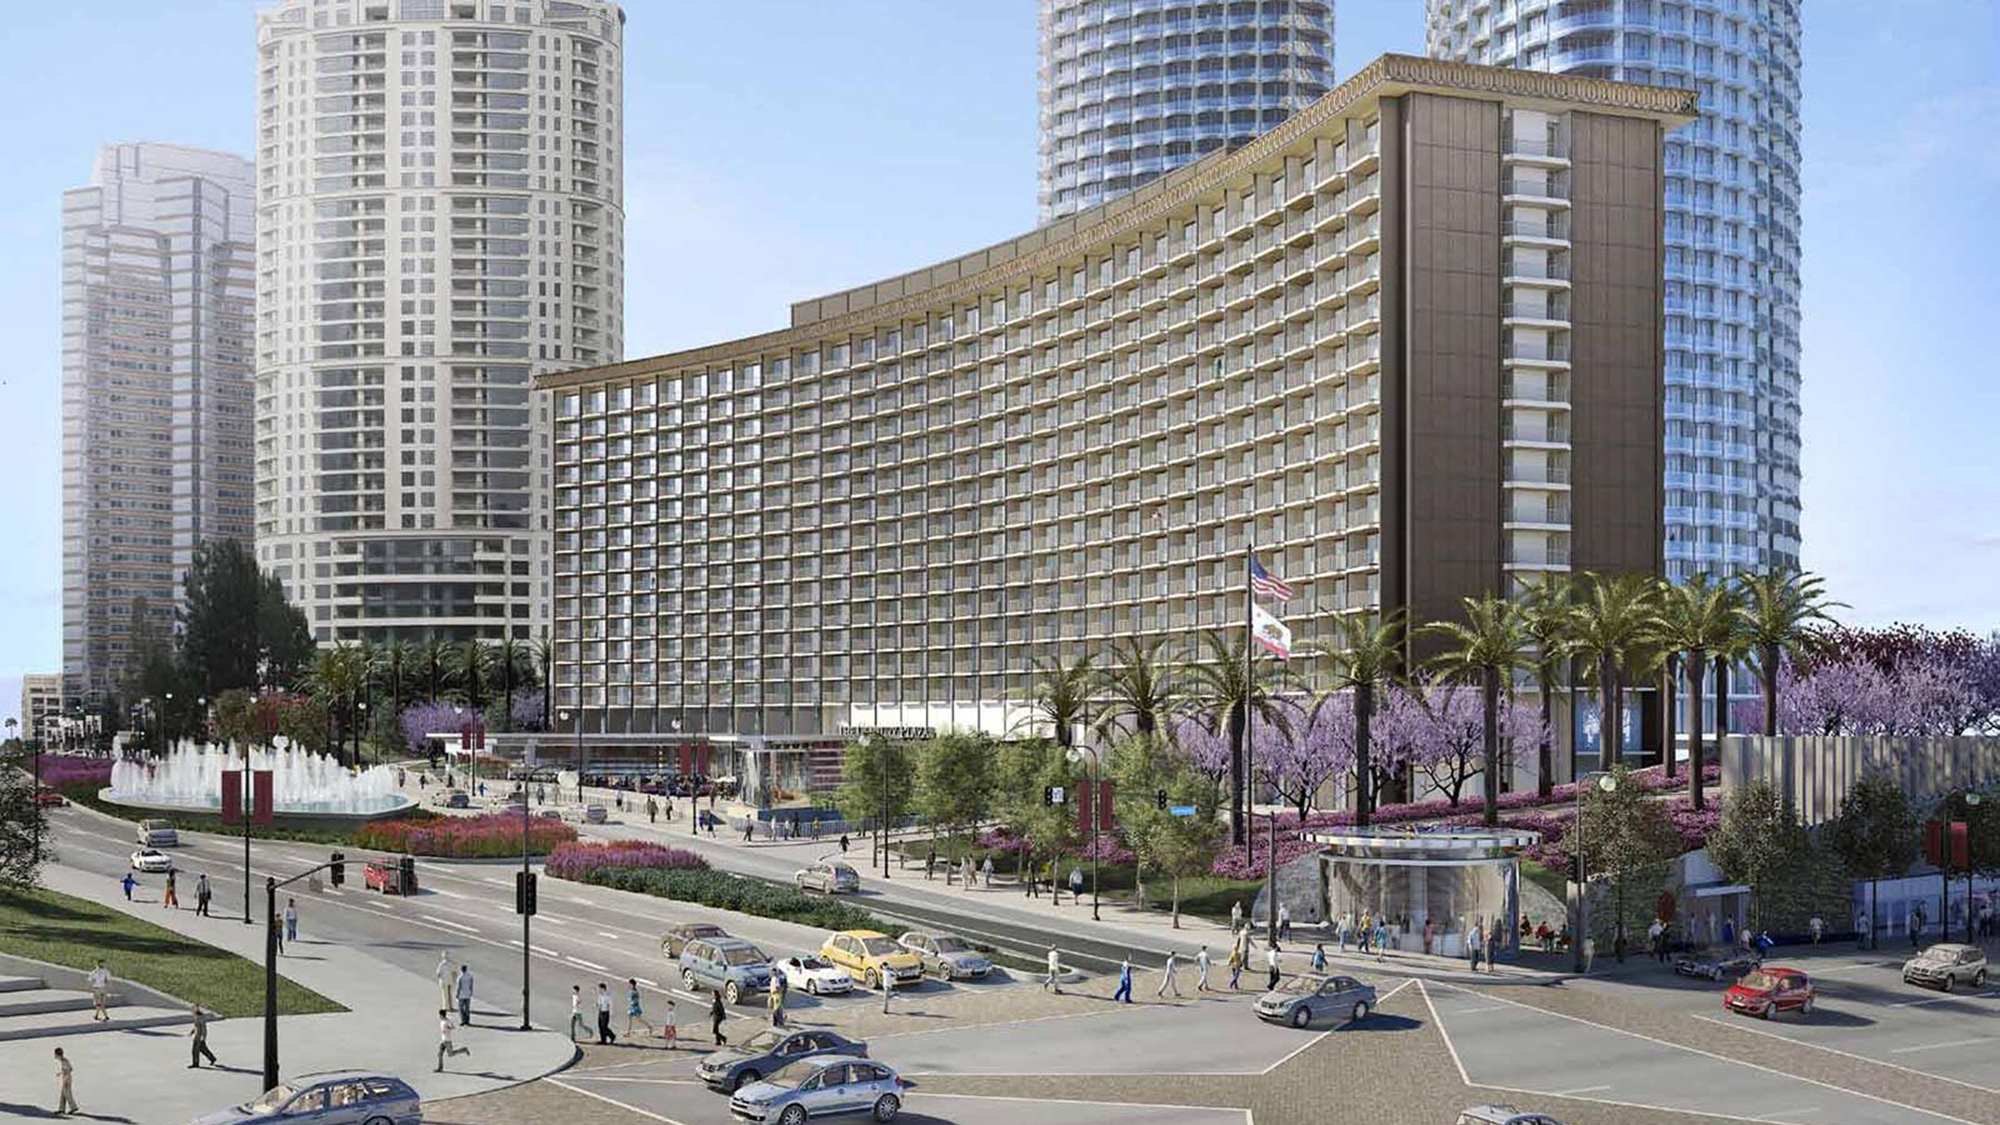 Fairmont Will Take Over Los Angeles Iconic Century Plaza